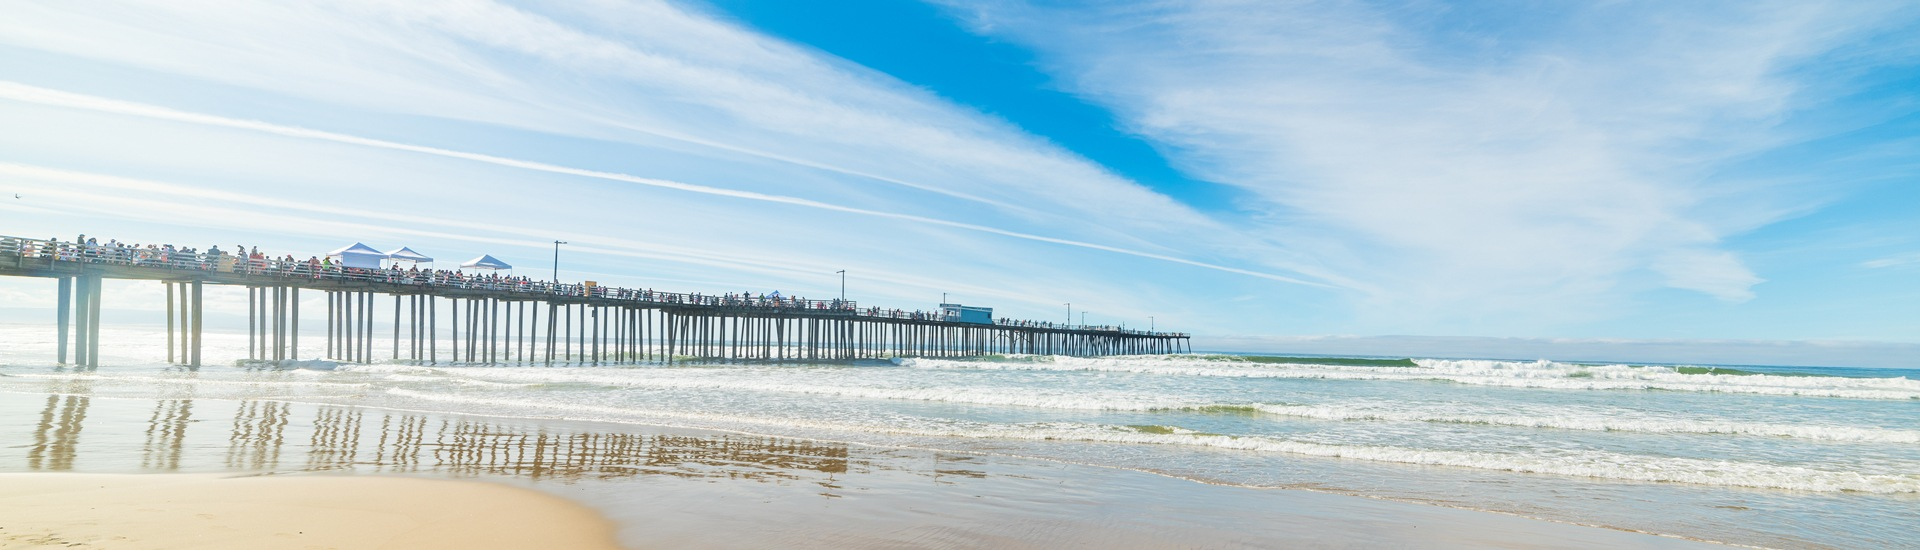 blue-sky-over-Pismo-Beach-626429726_4000x2670